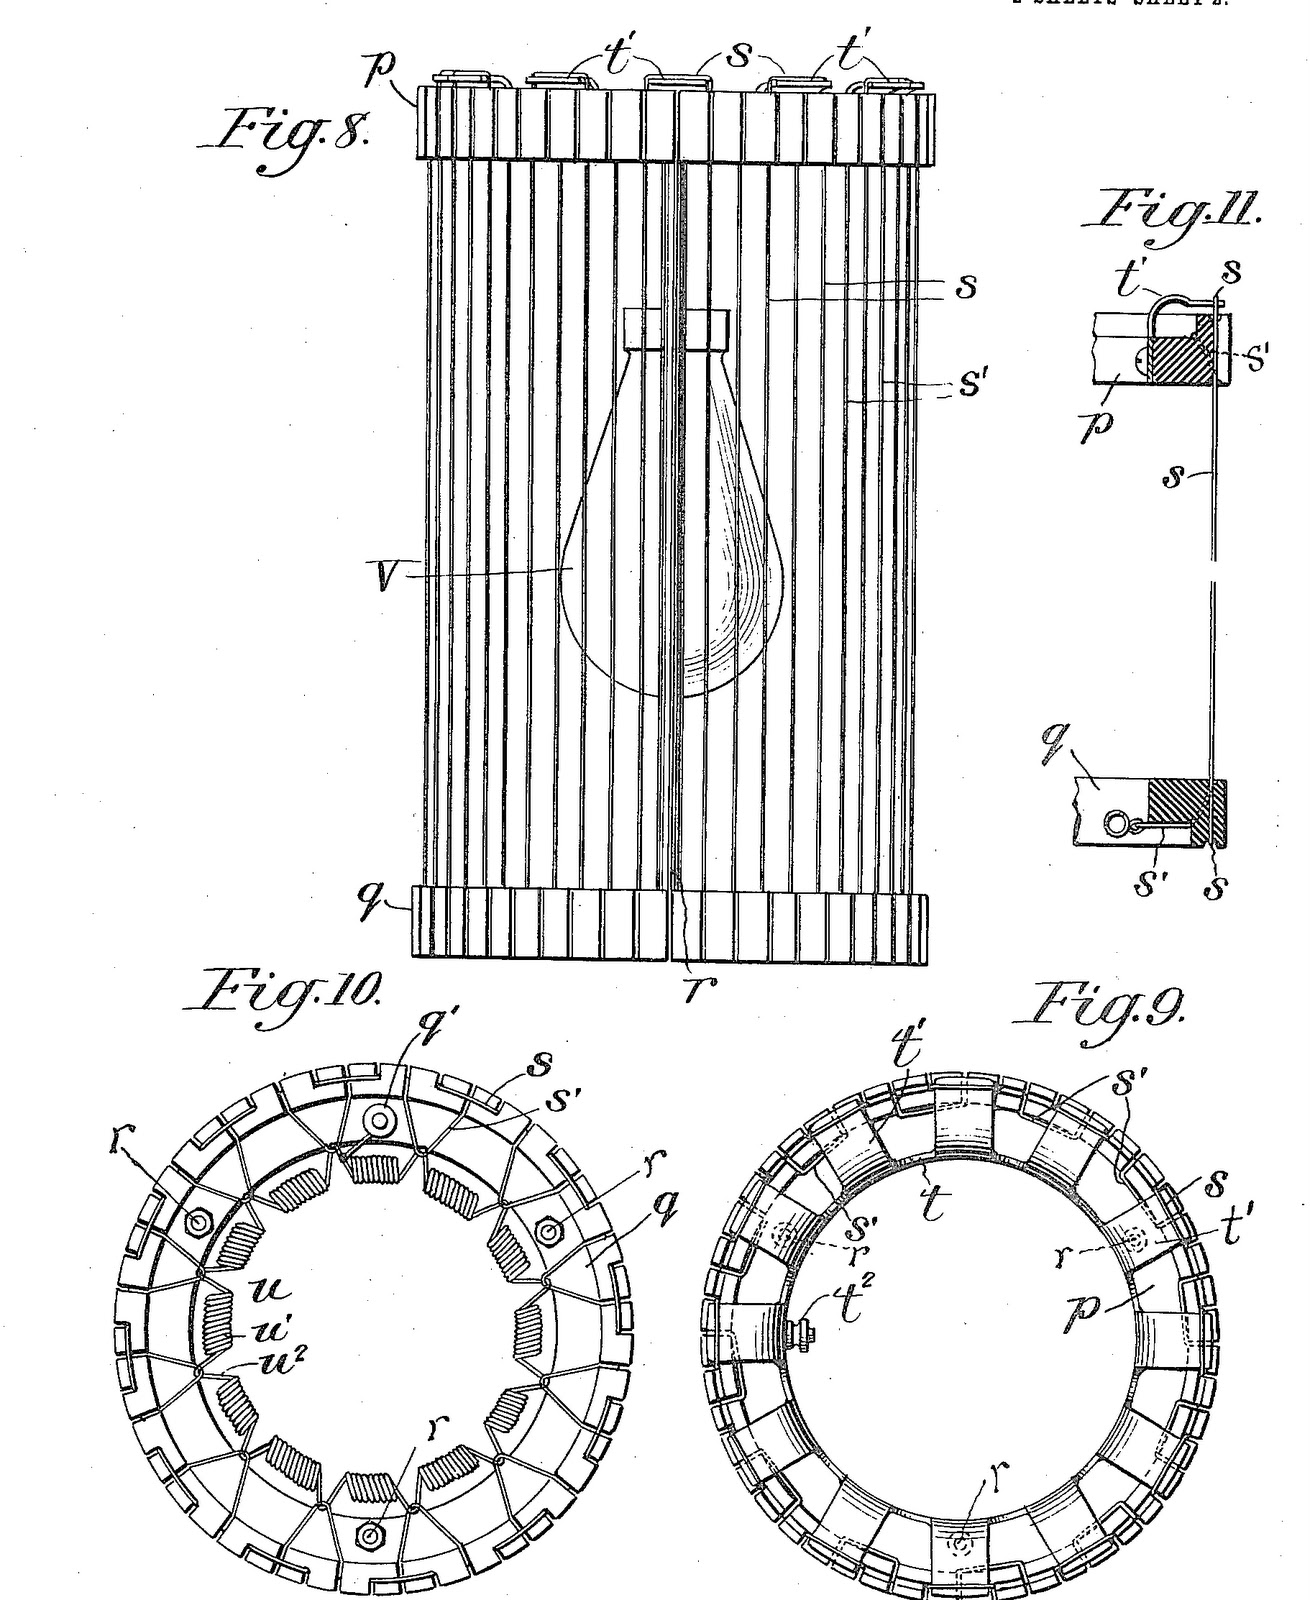 small resolution of the charge on the wires was supplied using an induction coil and a battery the